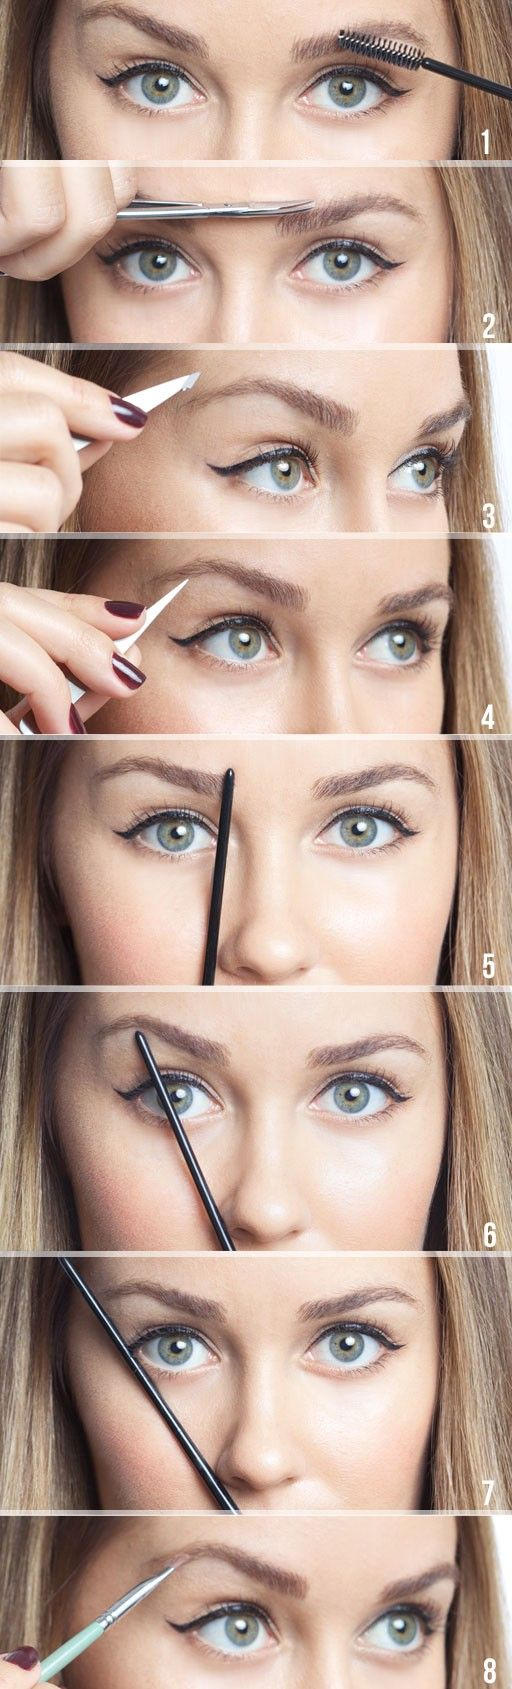 DIY - eyebrows